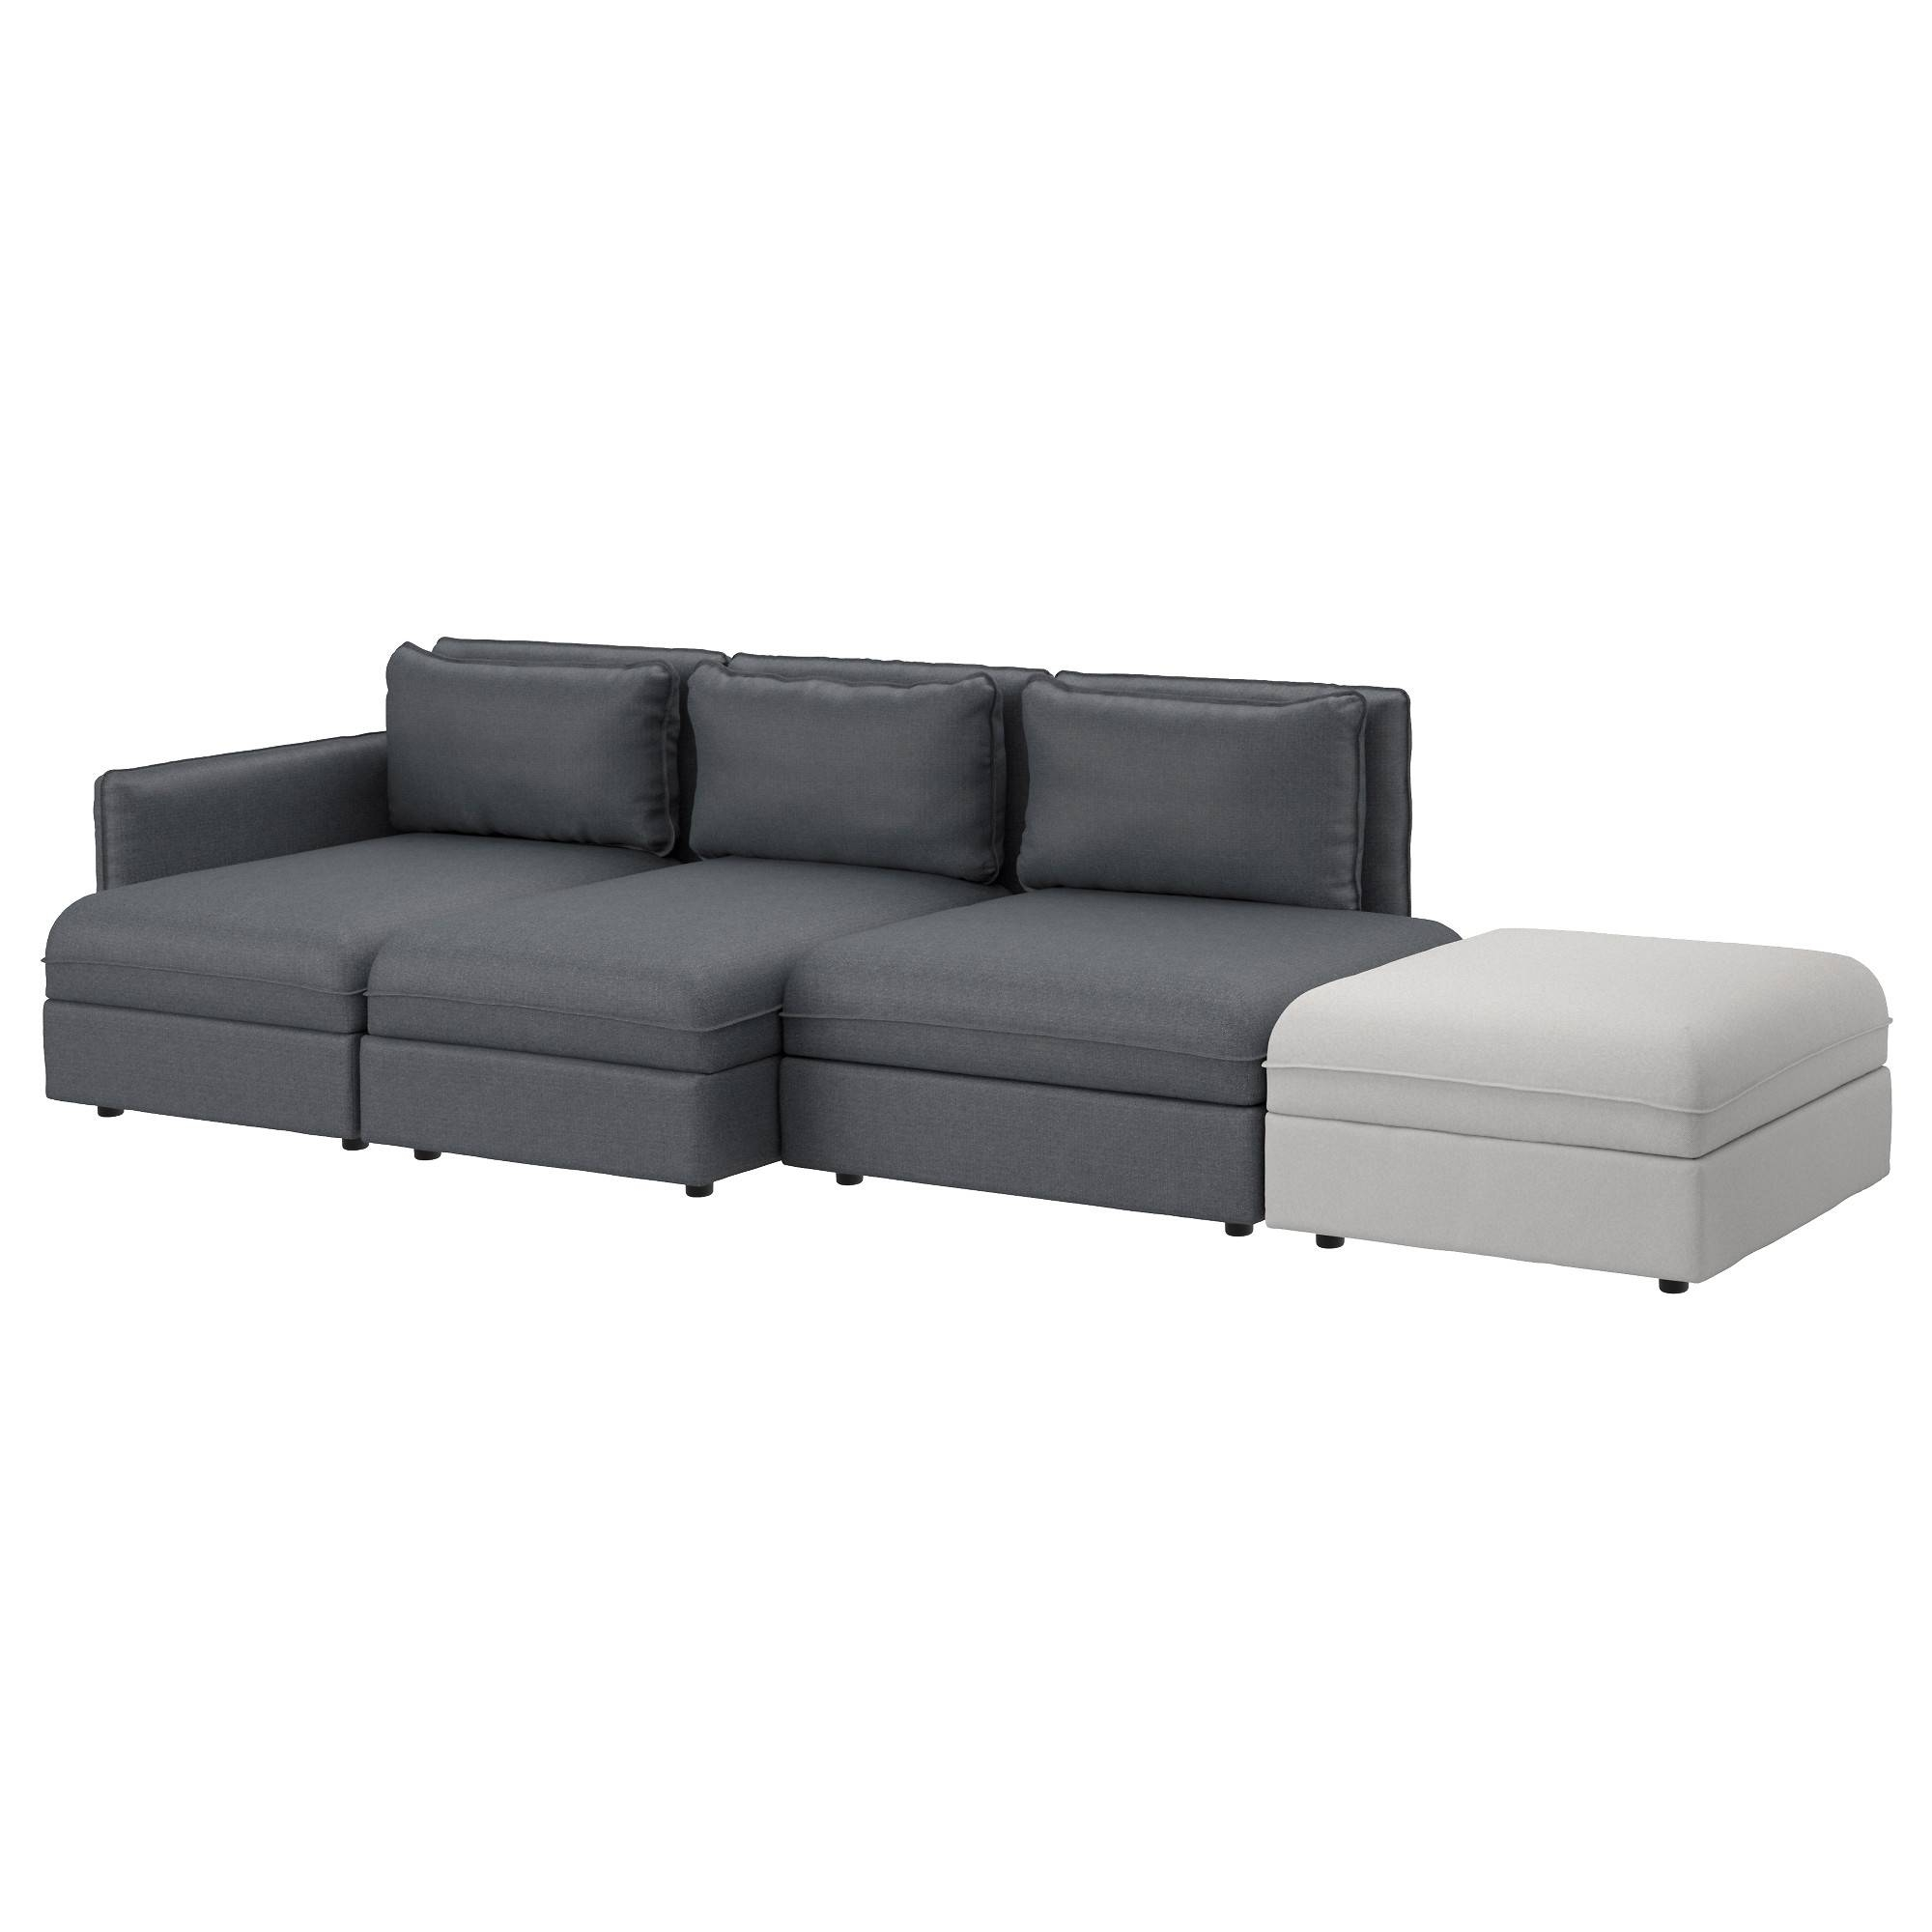 Sectional Sofas & Couches - Ikea inside Small Sectional Sofa (Image 17 of 30)